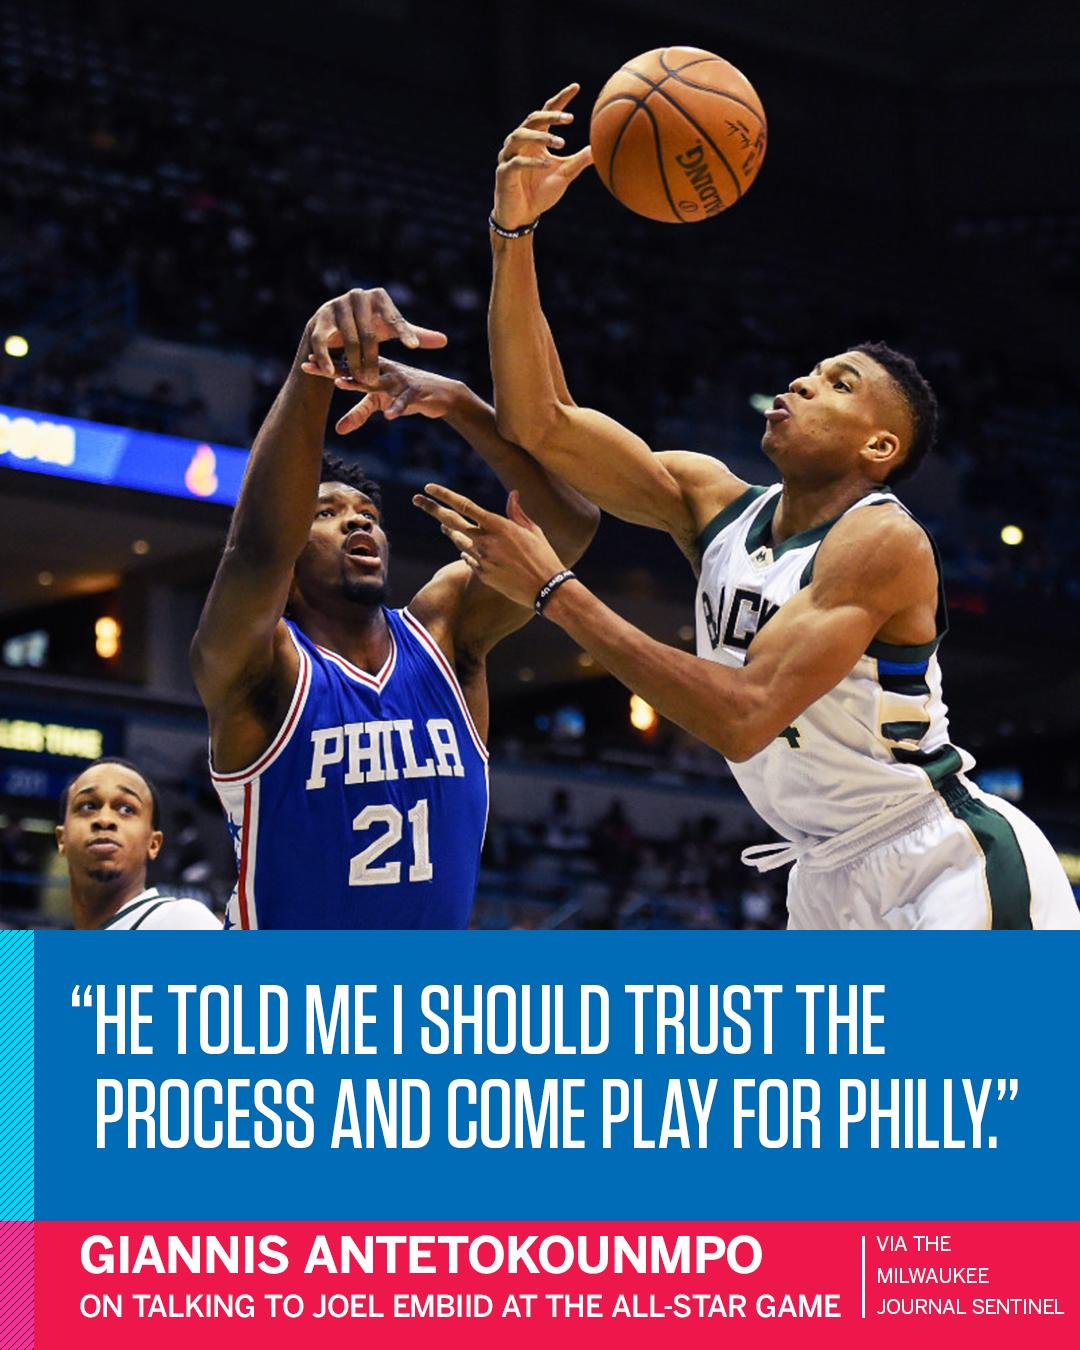 Embiid wants the Process to include Giannis. https://t.co/nhsPCtf5oM